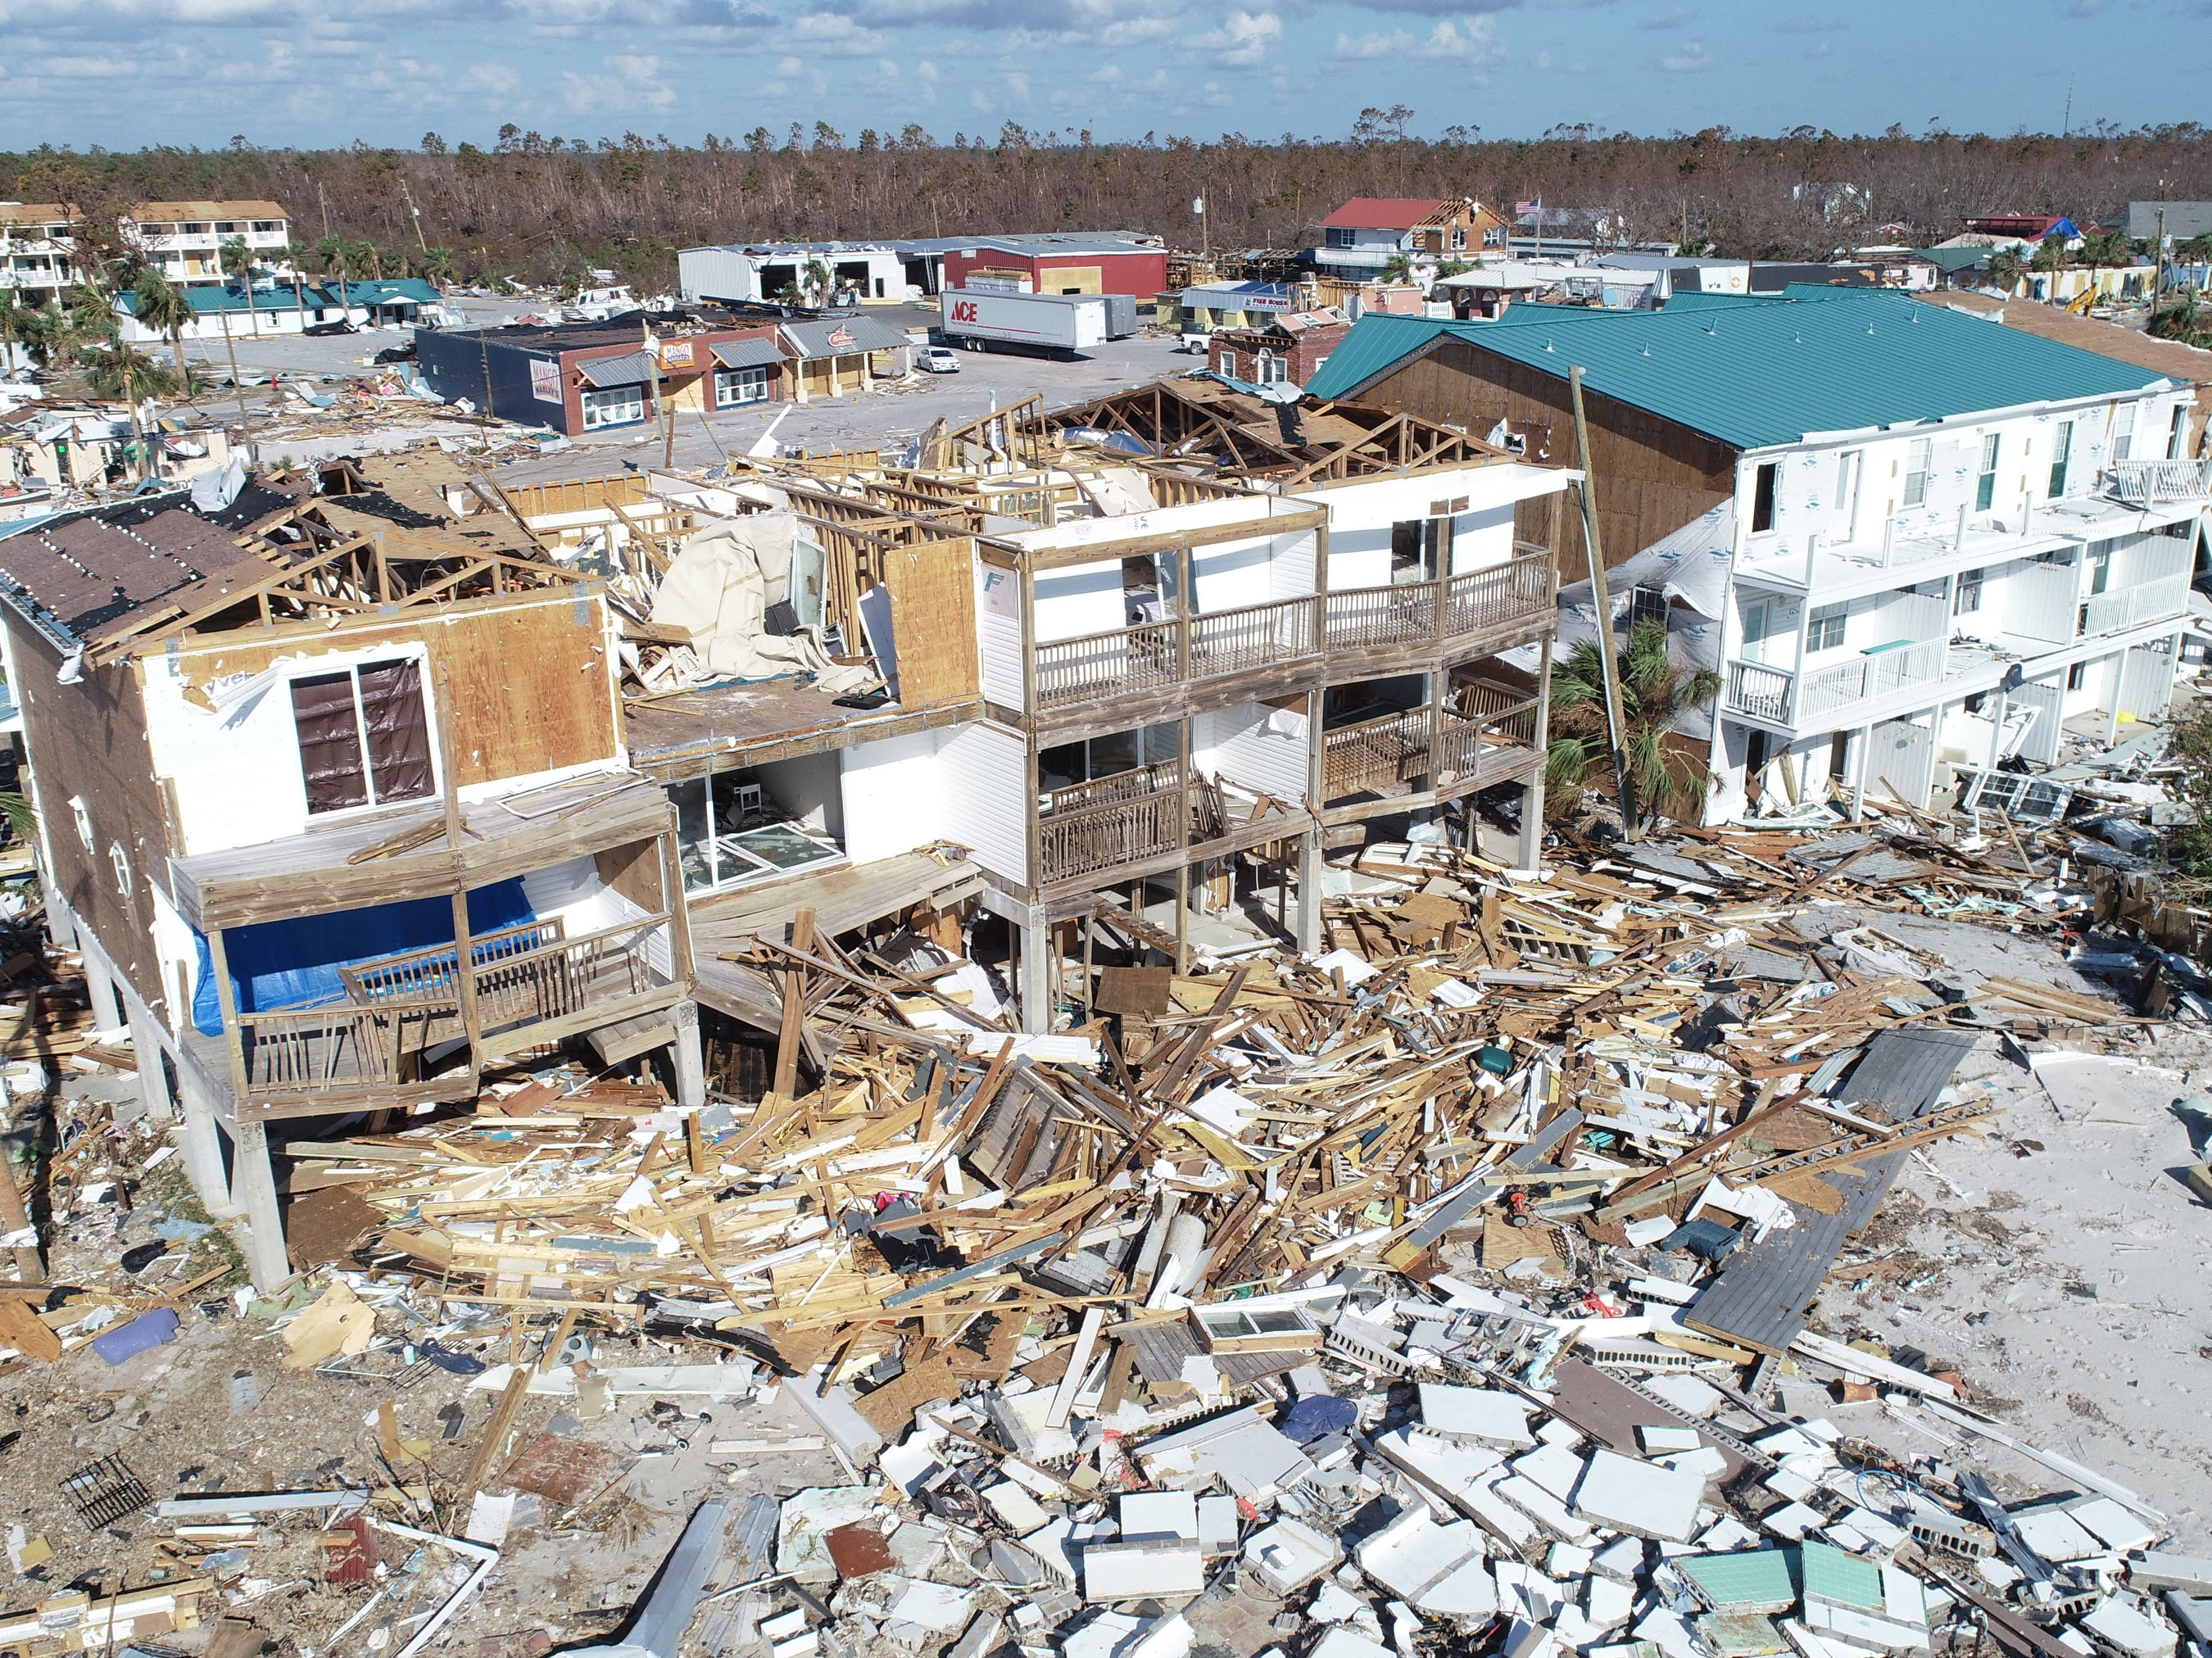 Aerial view from a drone of the devastating impact Hurricane Michael left behind along the Florida Panhandle's coastal town of Mexico Beach, Fla,, Oct, 16, 2018.